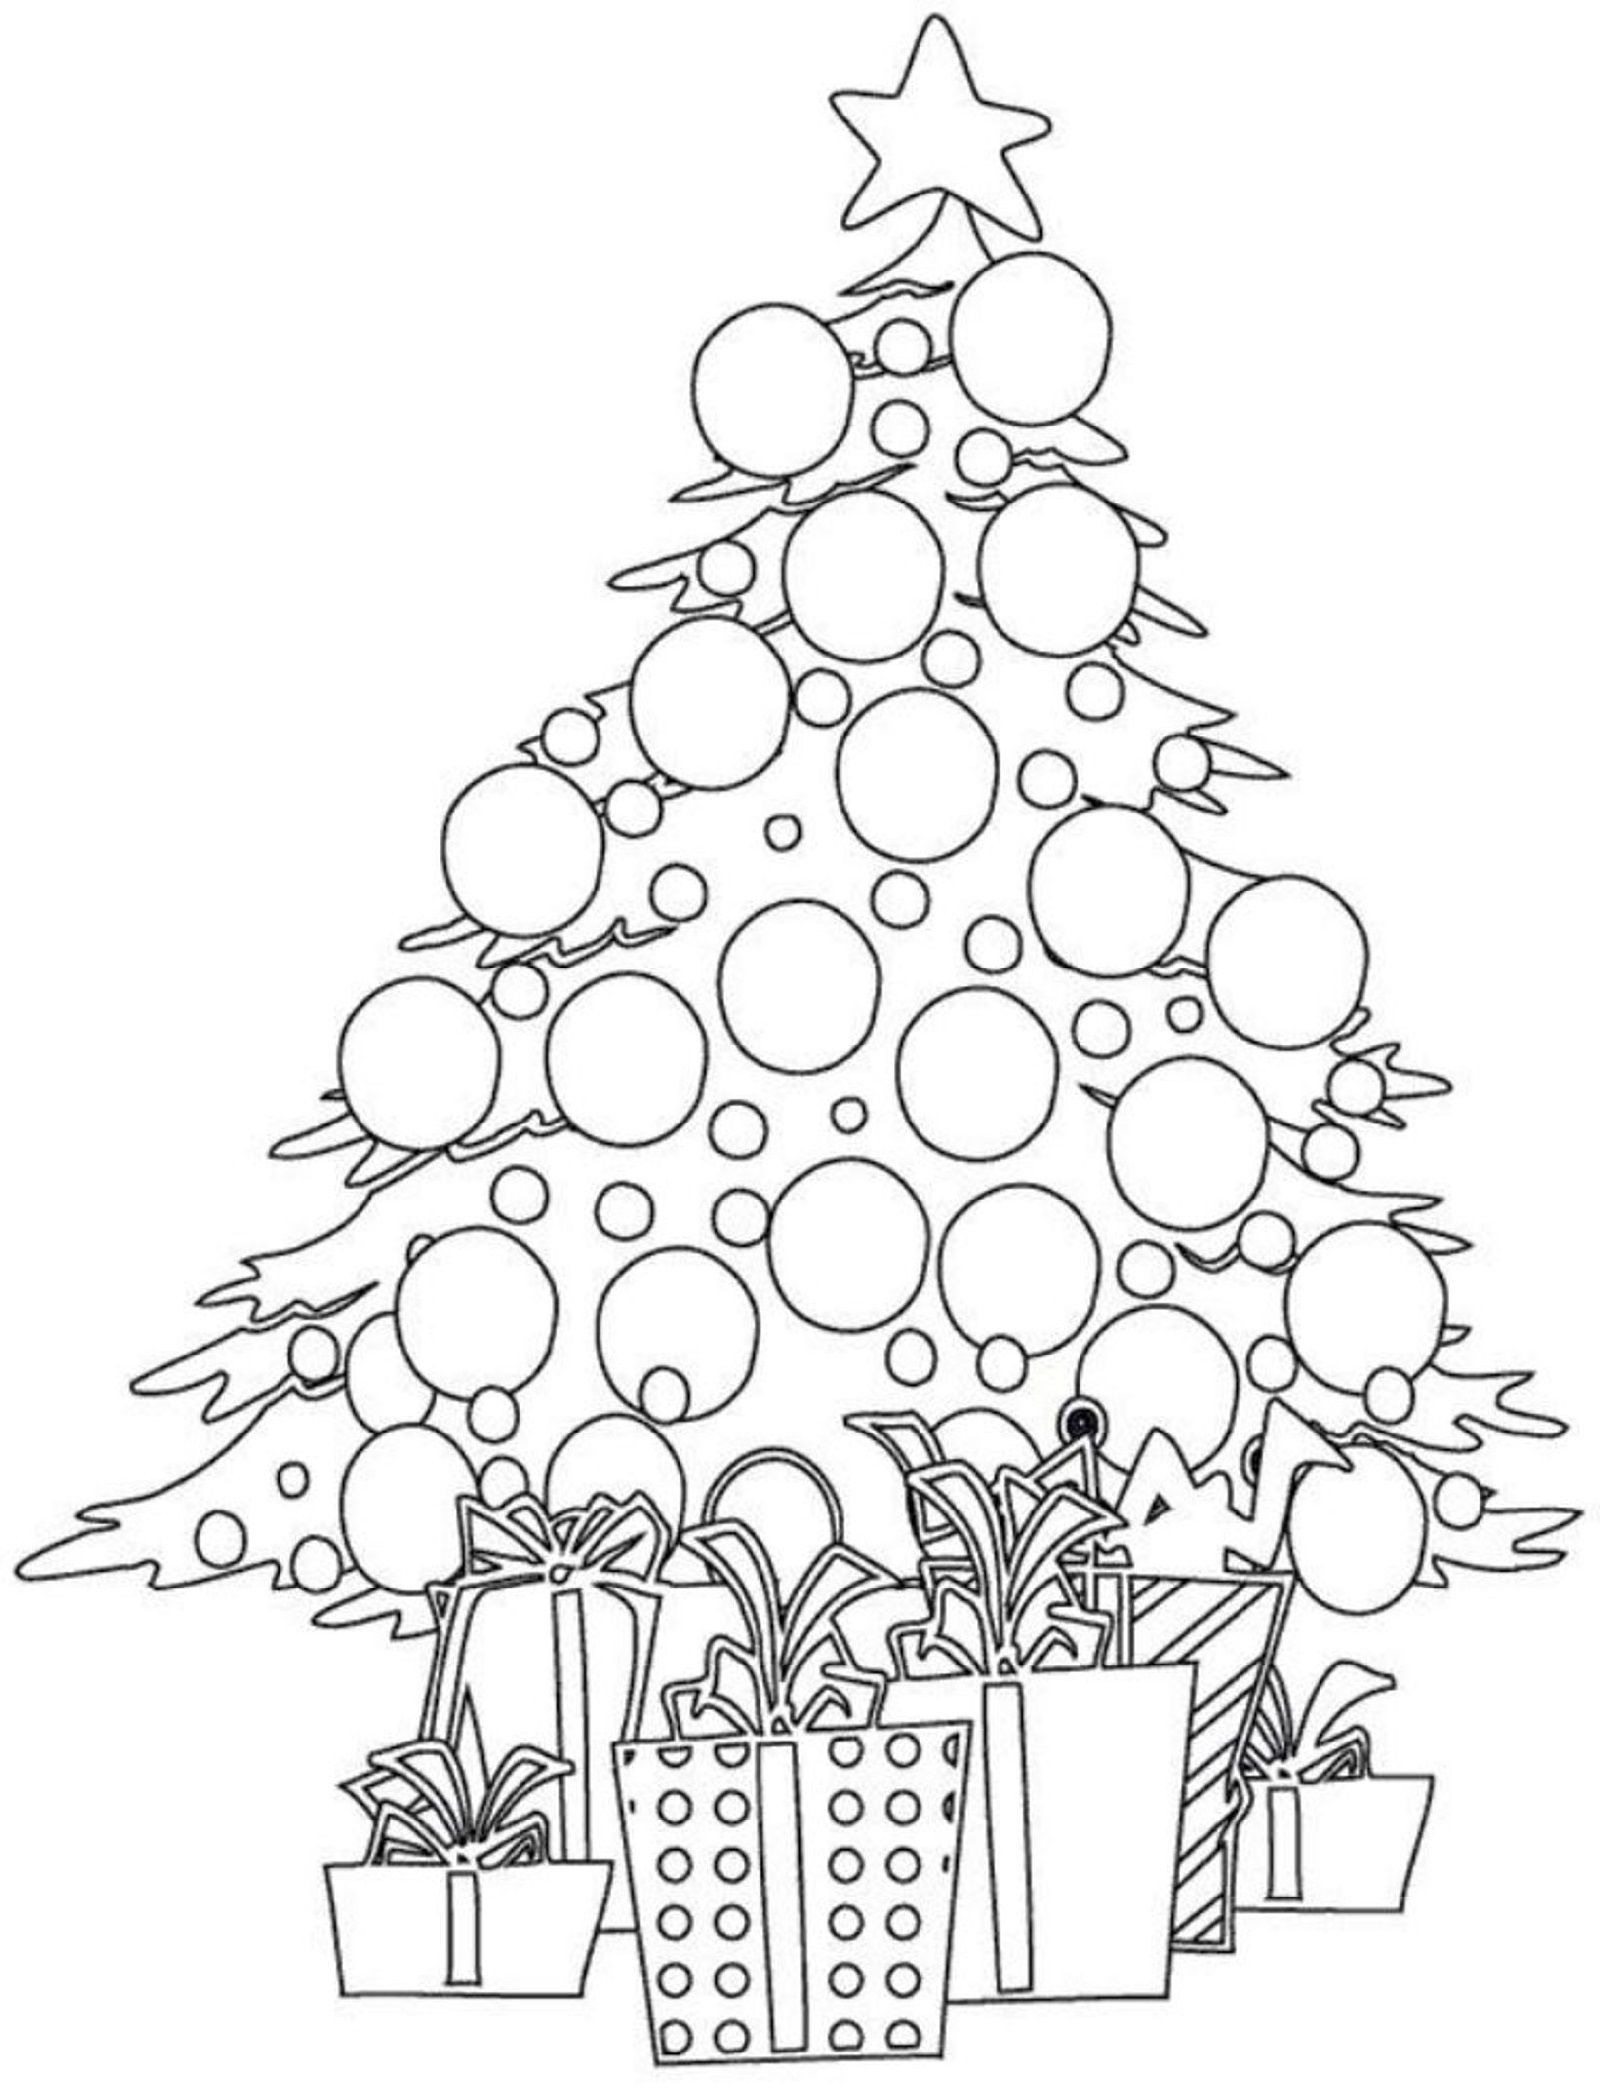 Fun Christmas Tree Lights Coloring Pages For Kindergarten Educative Printable Cool Christmas Trees Coloring Pages Christmas Fun